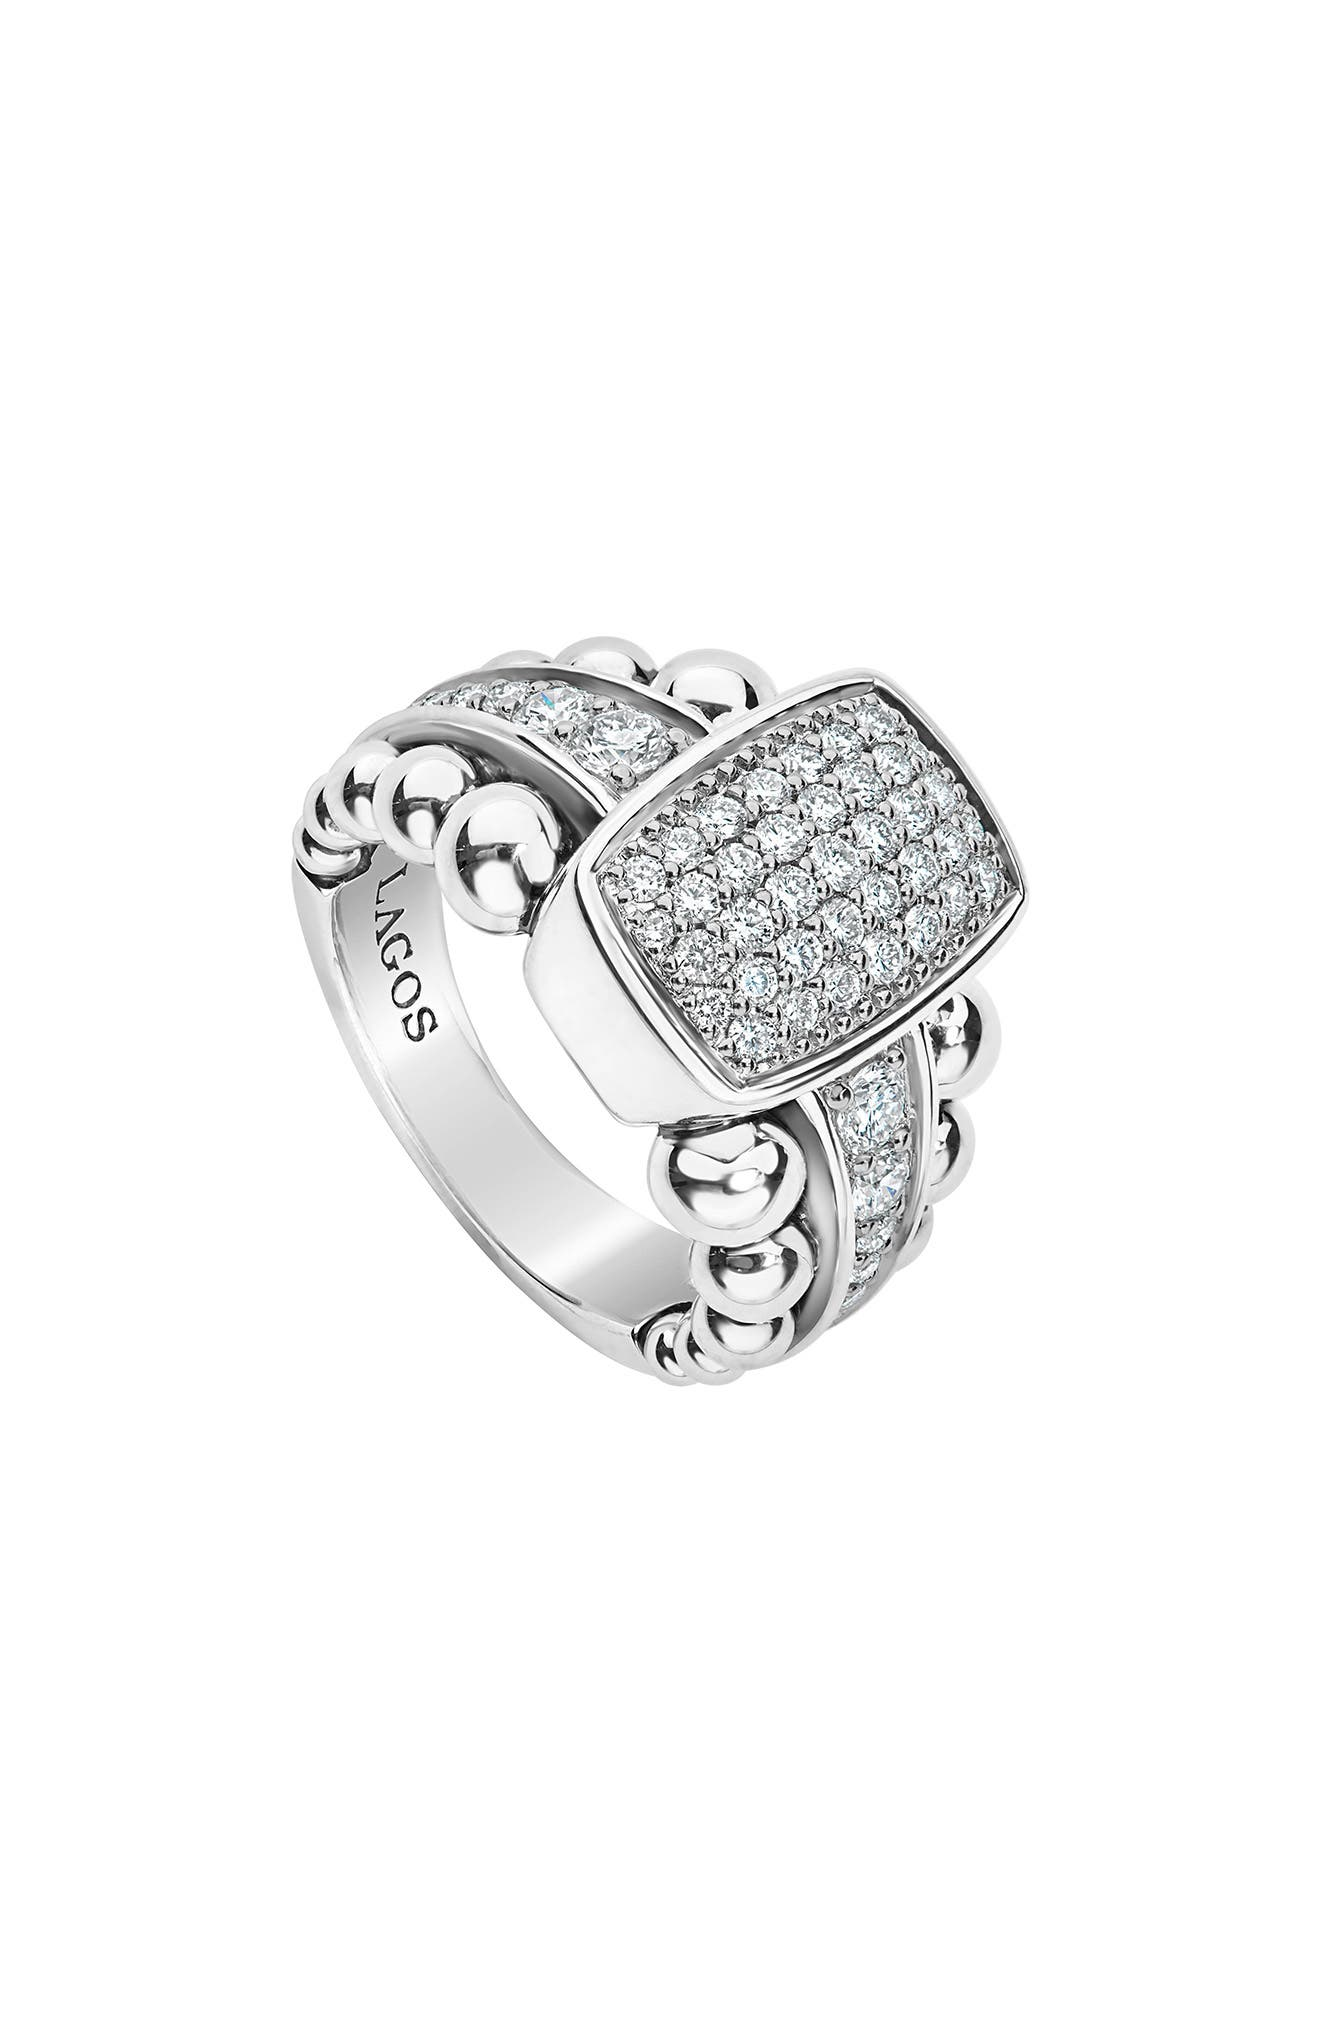 LAOGS Caviar Spark Vertical Statement Ring,                             Main thumbnail 1, color,                             SILVER/ DIAMOND